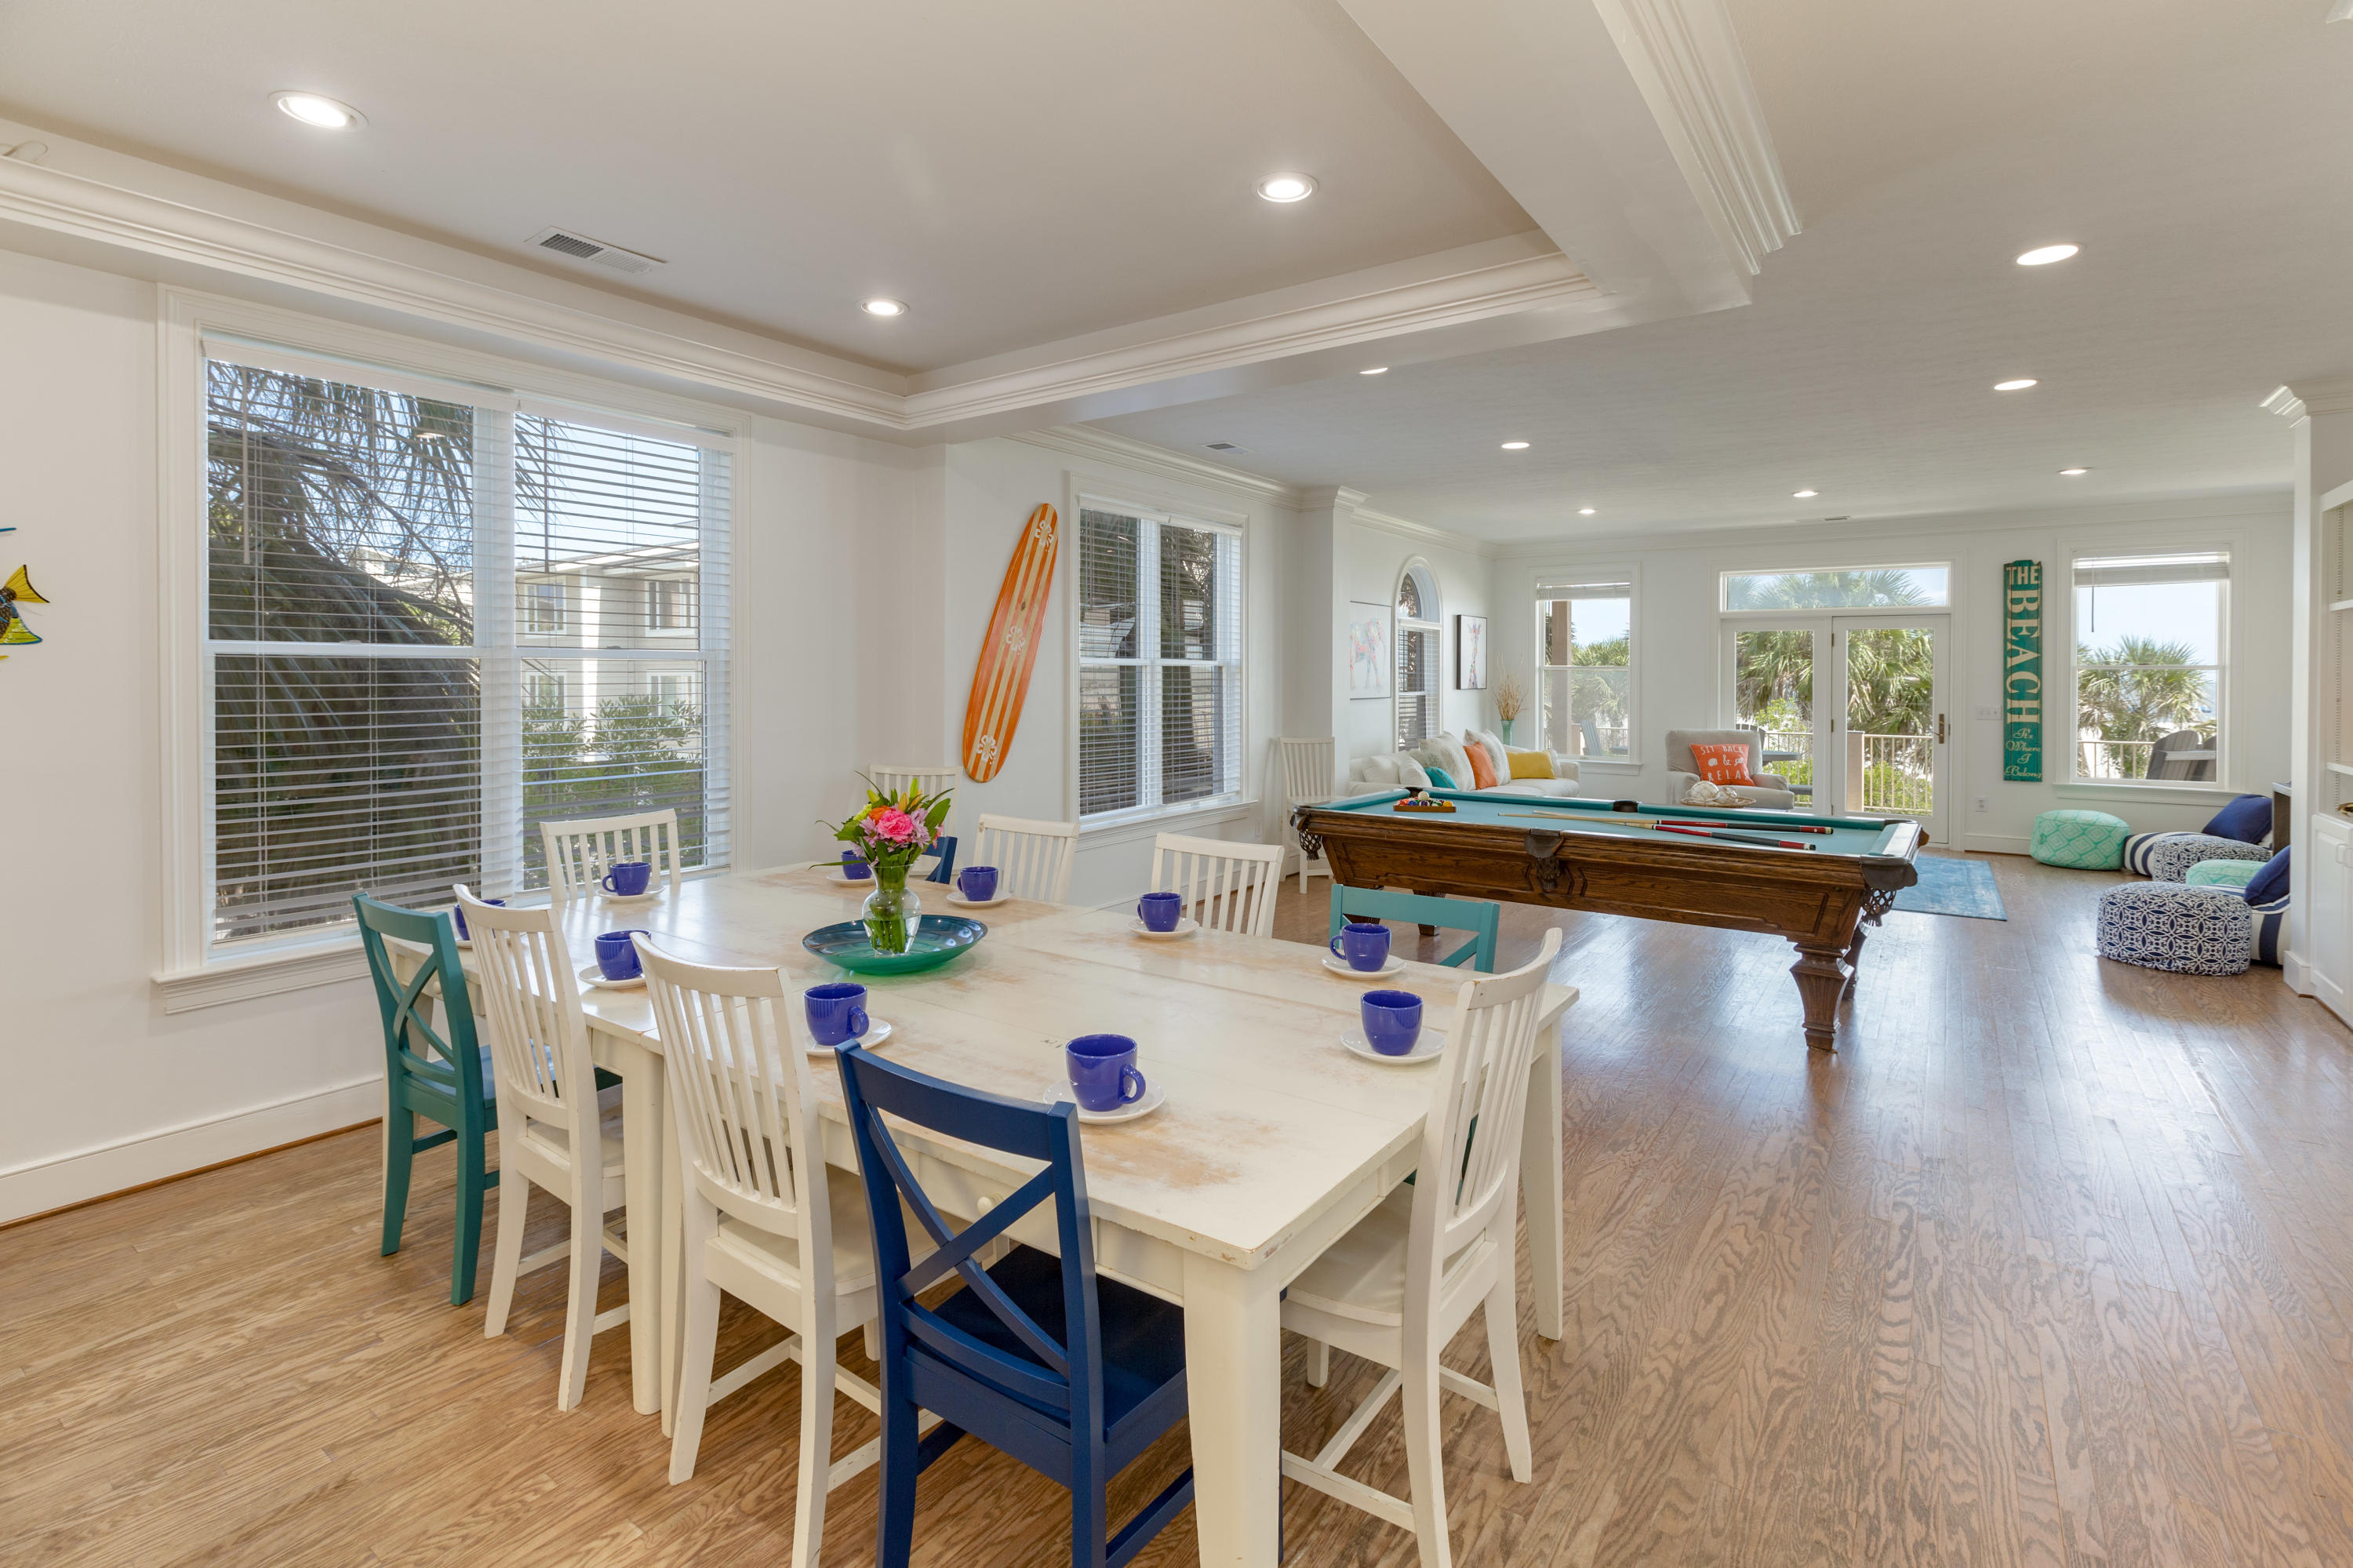 Wild Dunes Homes For Sale - 64 Grand Pavilion, Isle of Palms, SC - 10